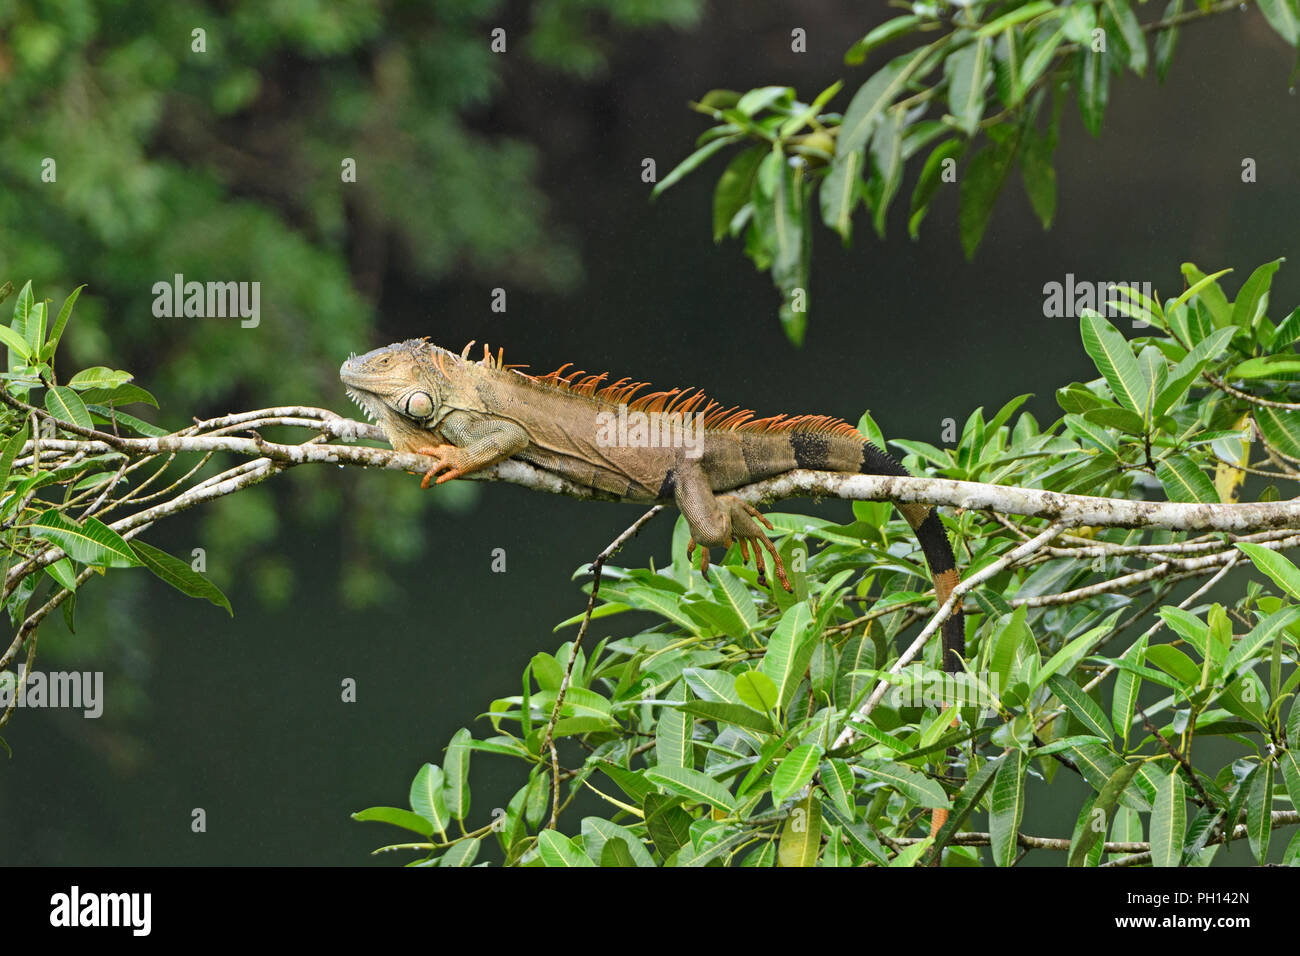 Iguana in a rain forest tree in La Selva Biological Reserve in Costa Rica Stock Photo